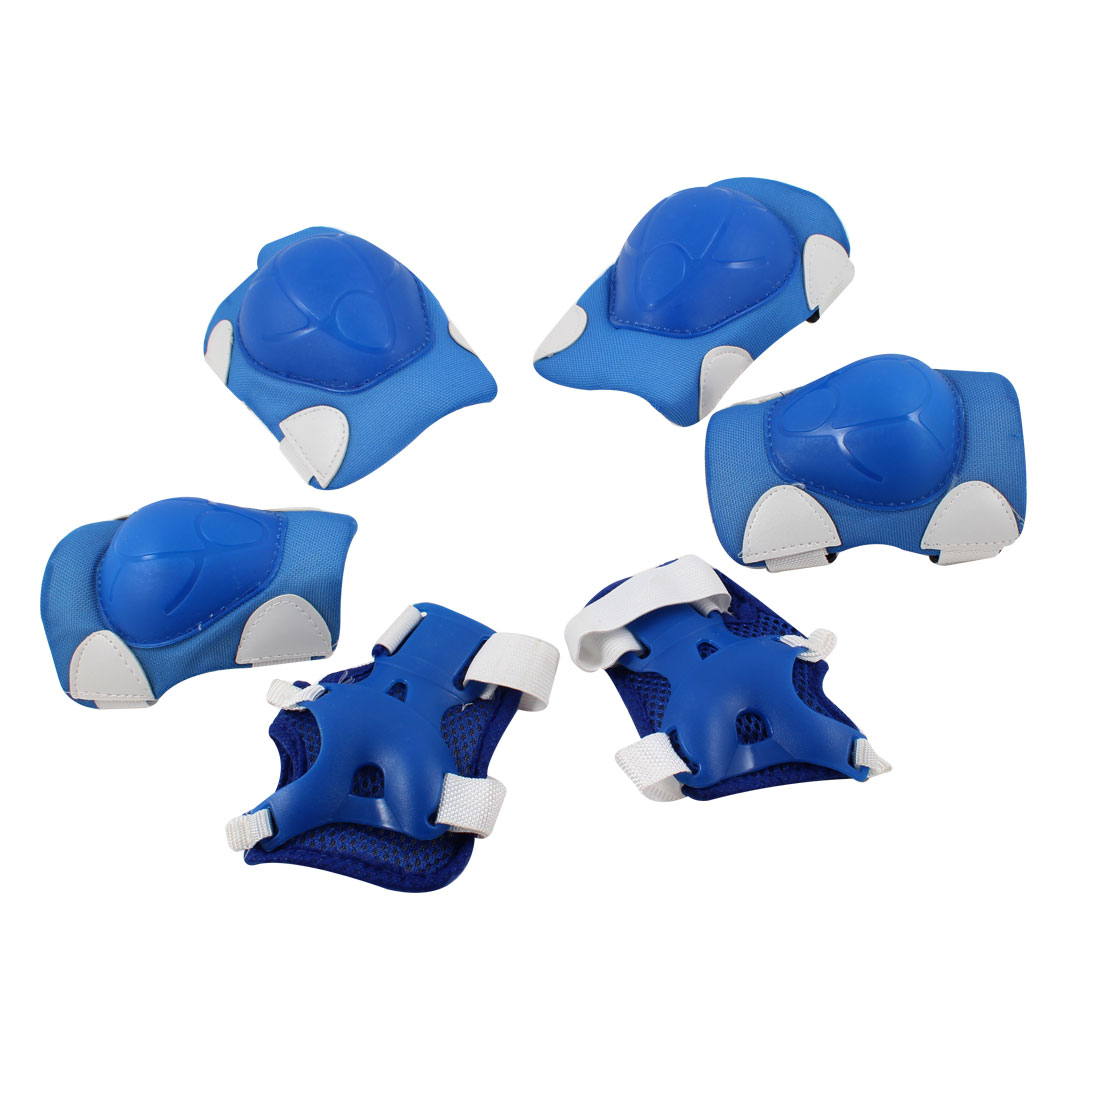 Roller Skating Knee Palm Elbow Guard Support Pad Blue White 6 in 1 Set for Kids